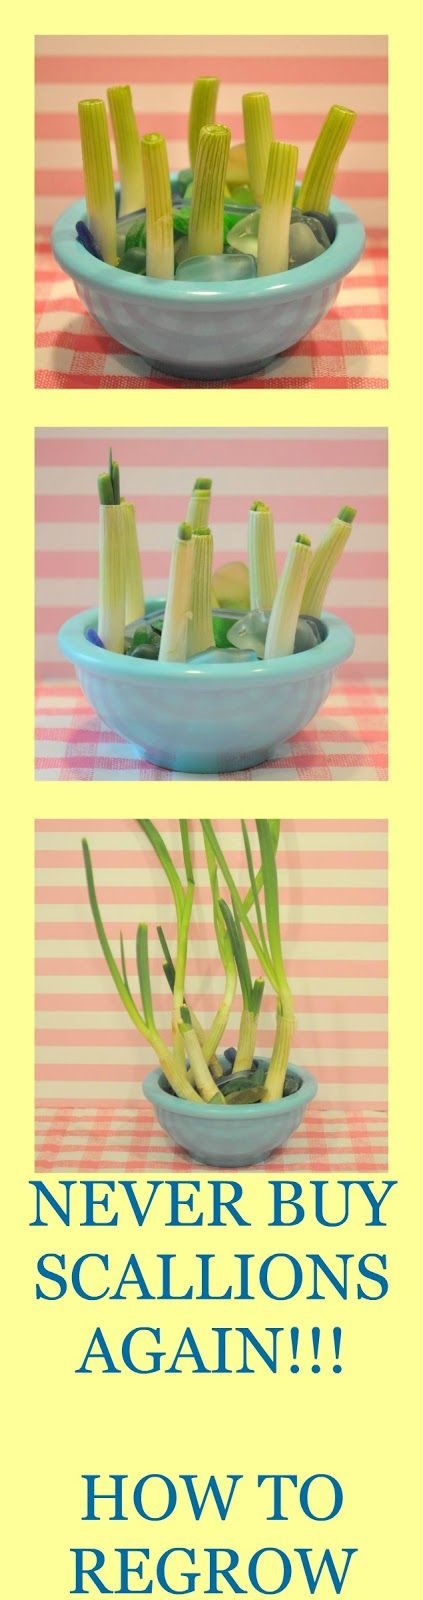 Never buy scallions again...super easy way to regrow your green onions indoors!